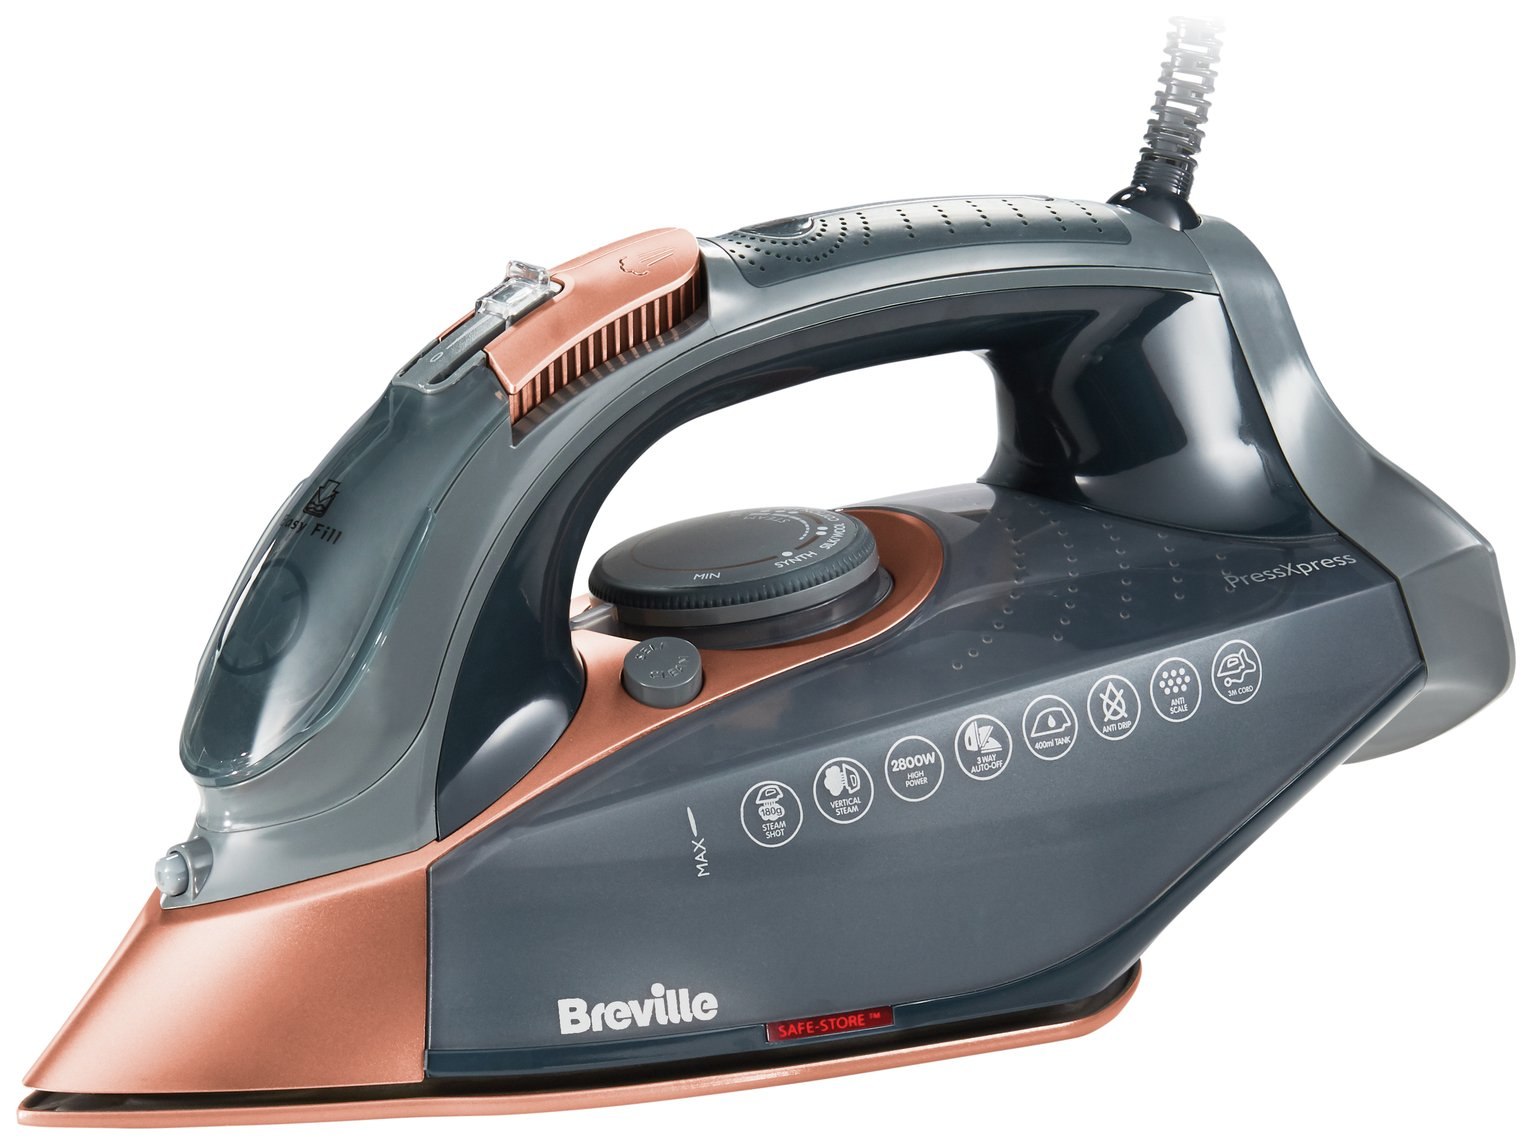 Breville Press Xpress VIN407 Steam Iron